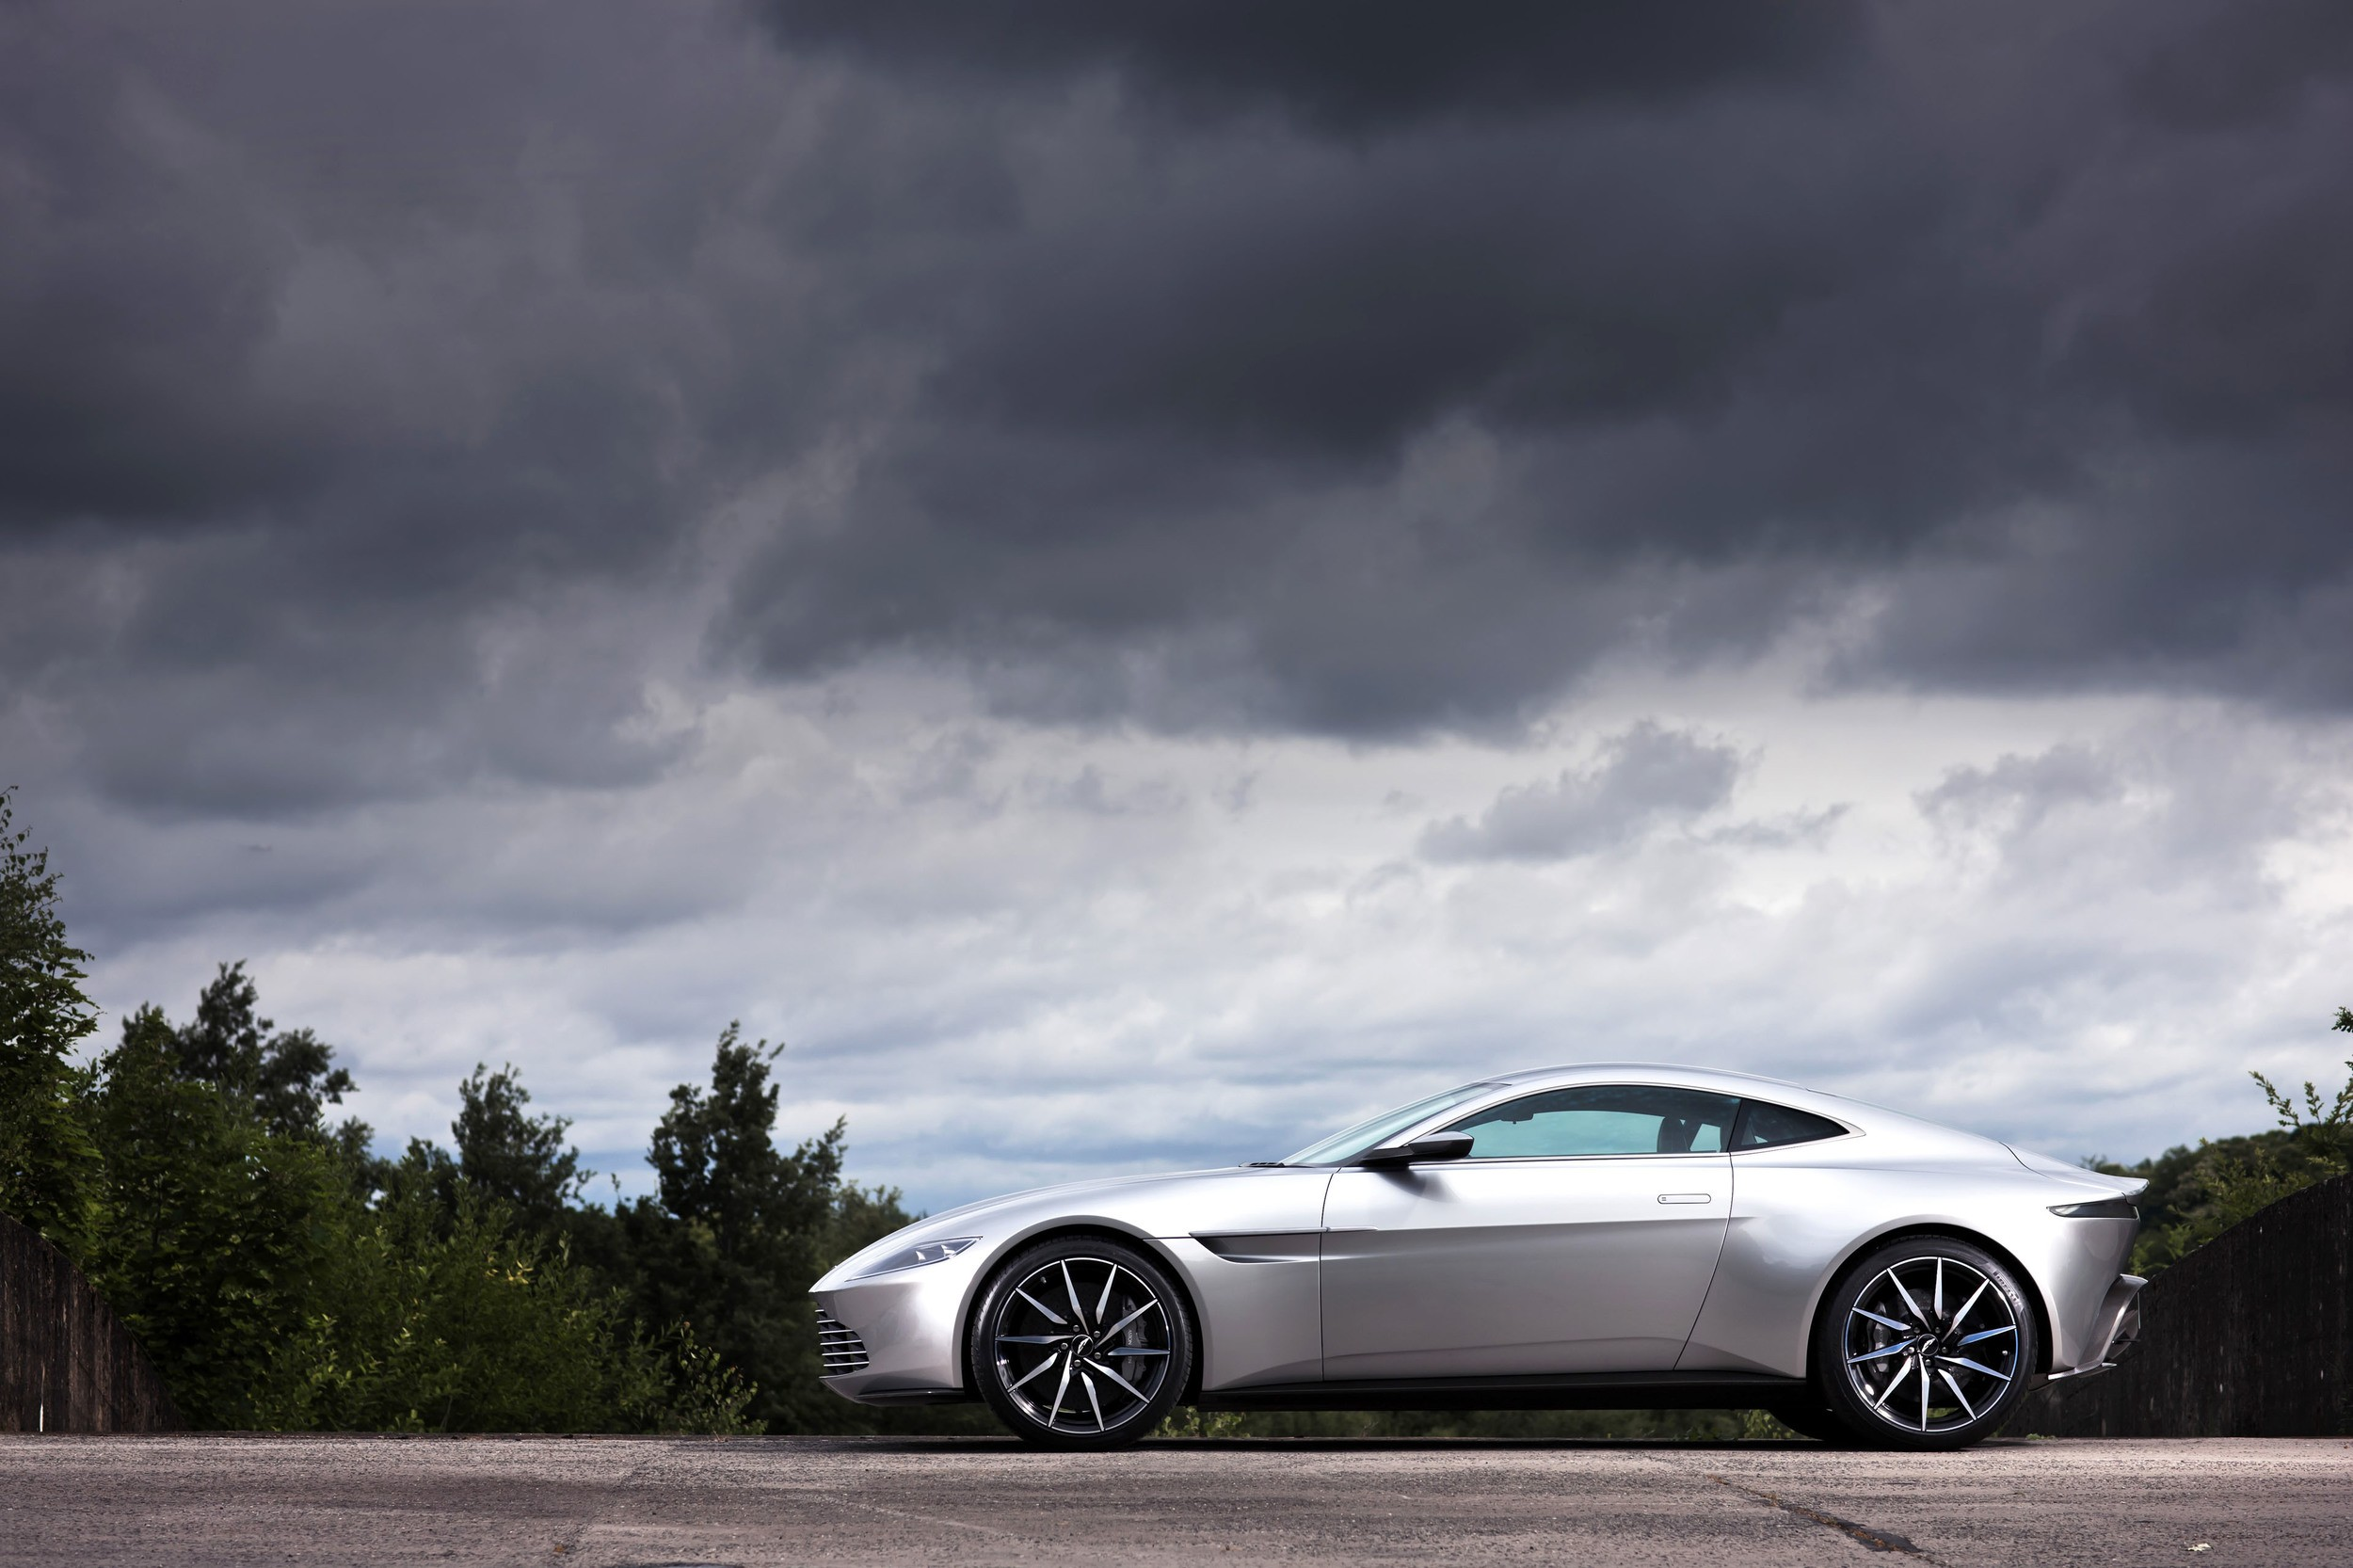 James Bond Bids Farewell To The Aston Martin Db Sold At Auction For M